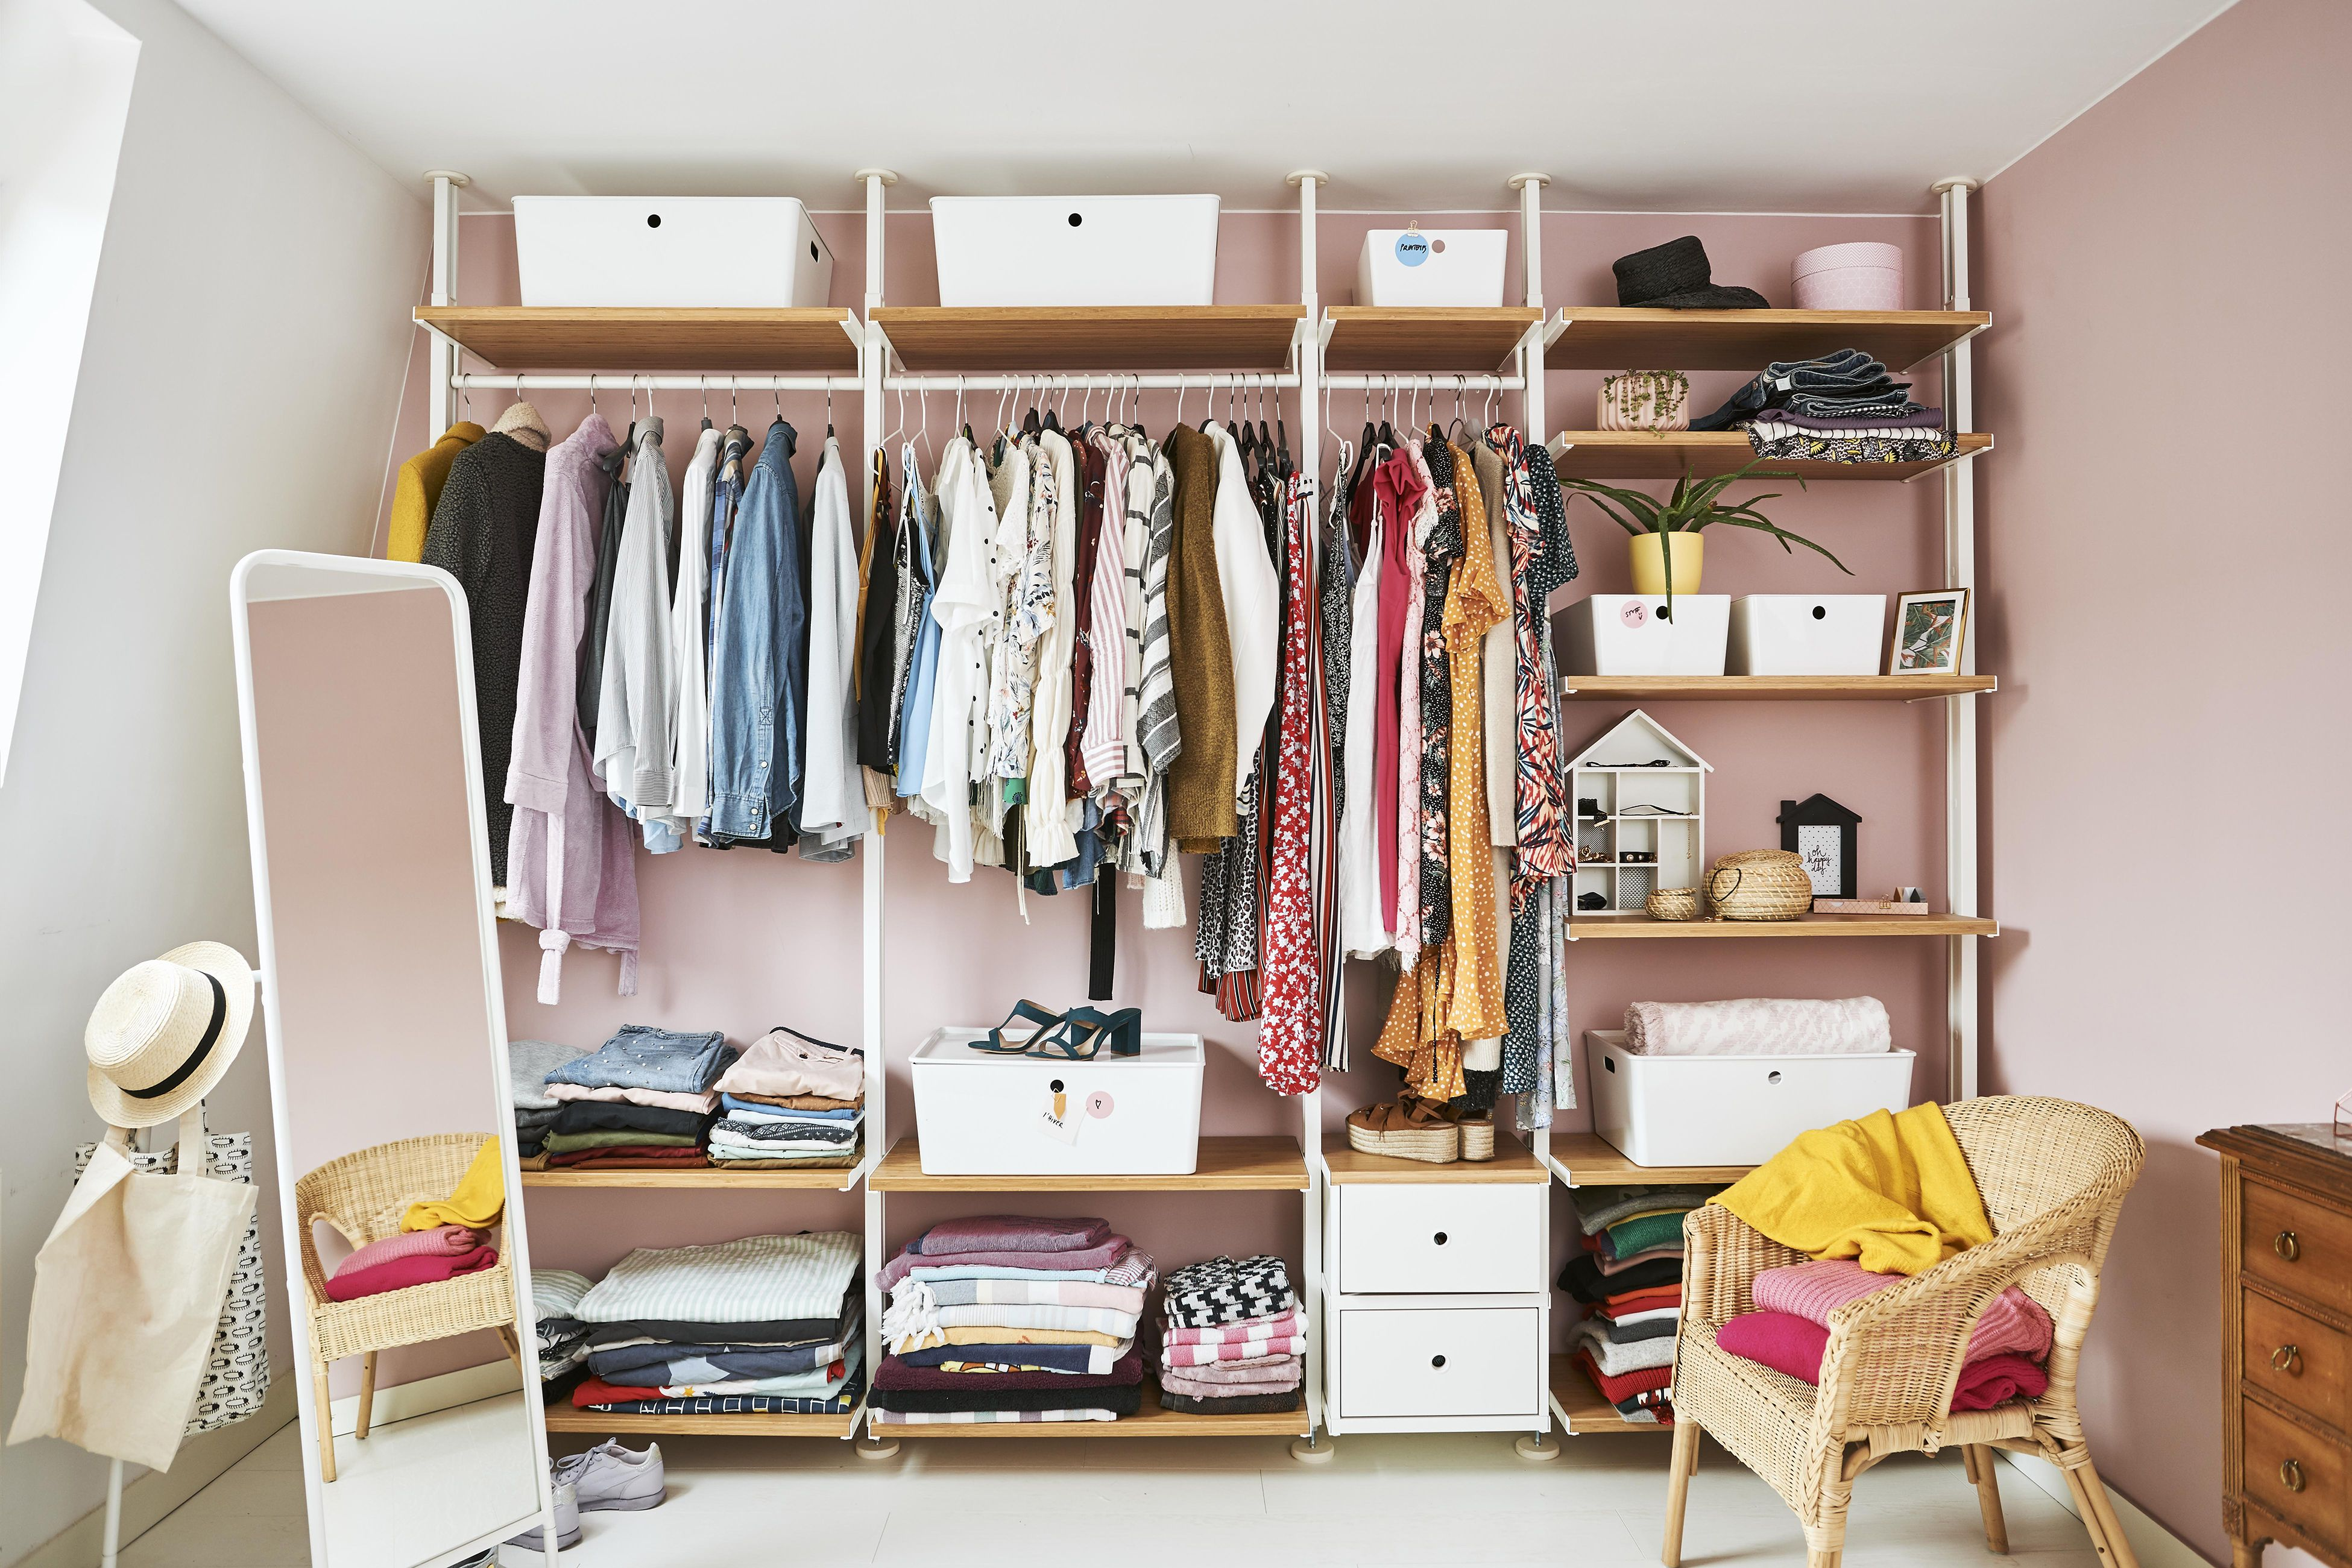 Design Your Own Wardrobe Plan Open Around The Clothes And Accessories You Need To